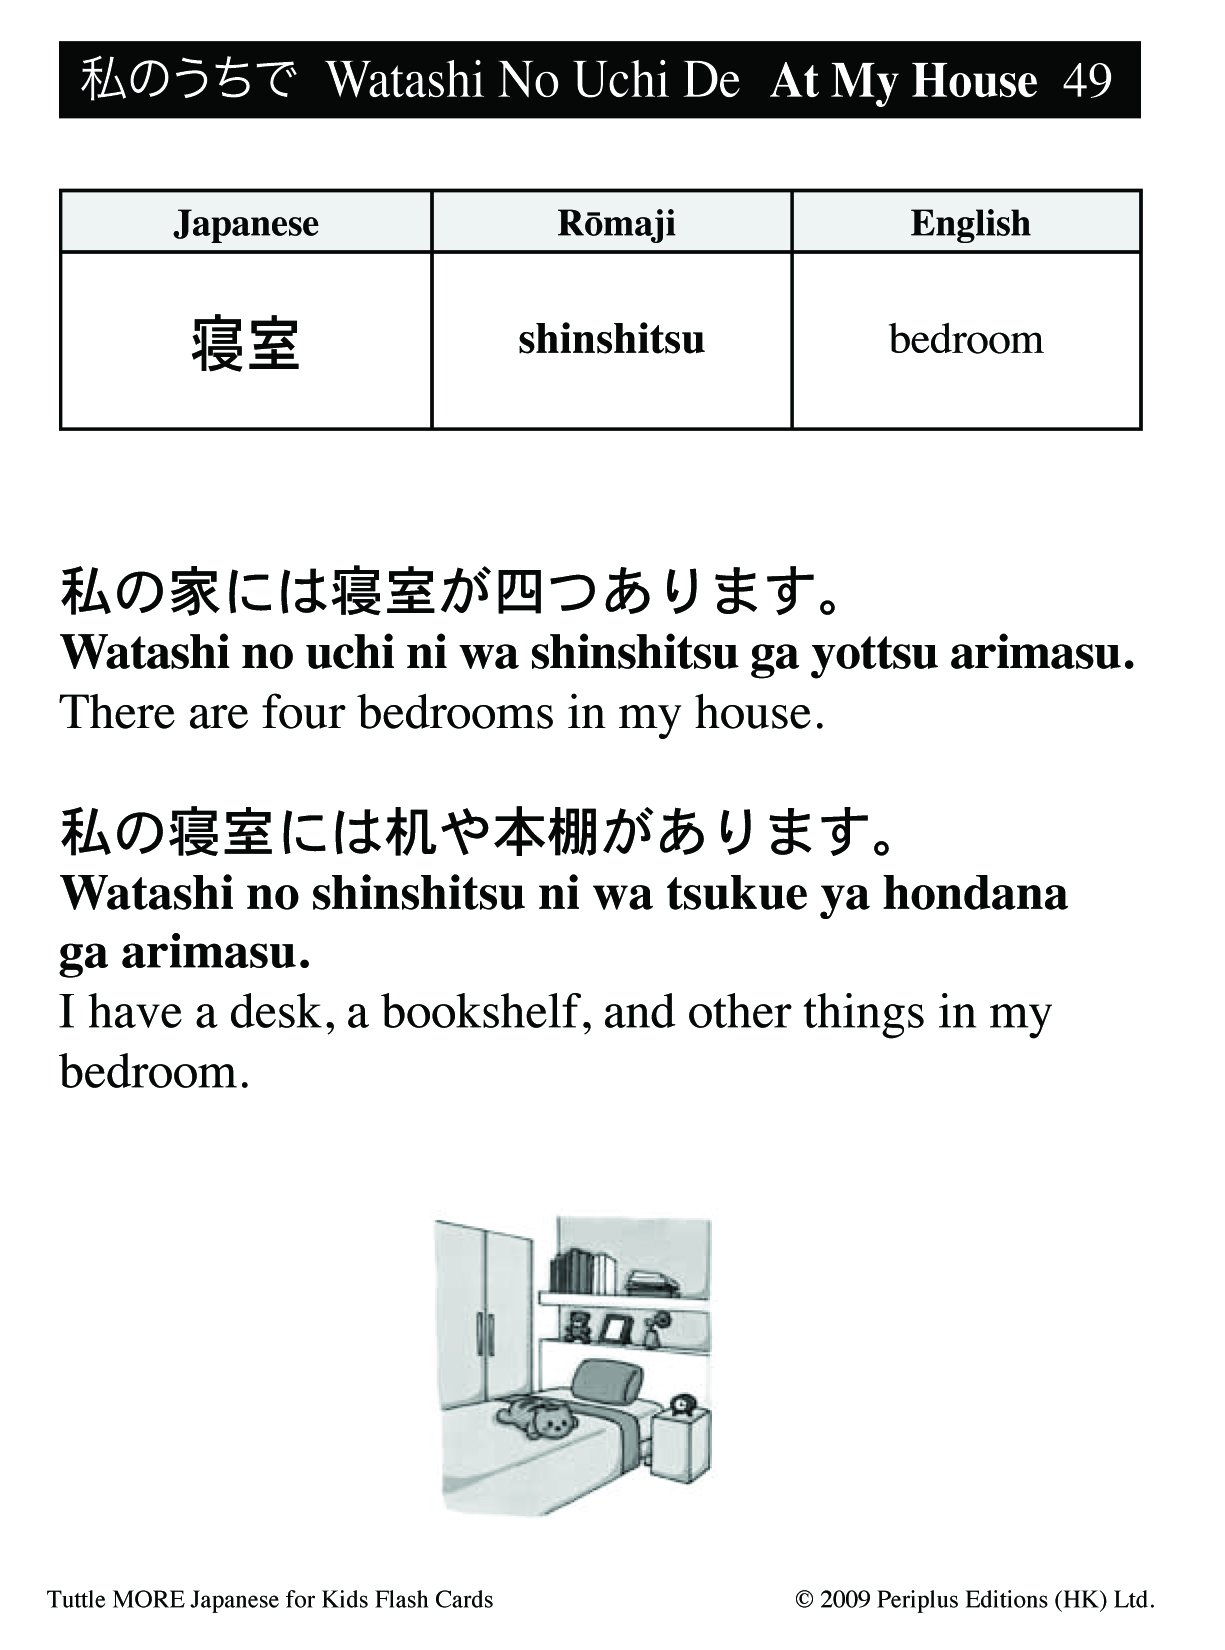 Tuttle More Japanese For Kids Flash Cards Kit Includes 64 Flash